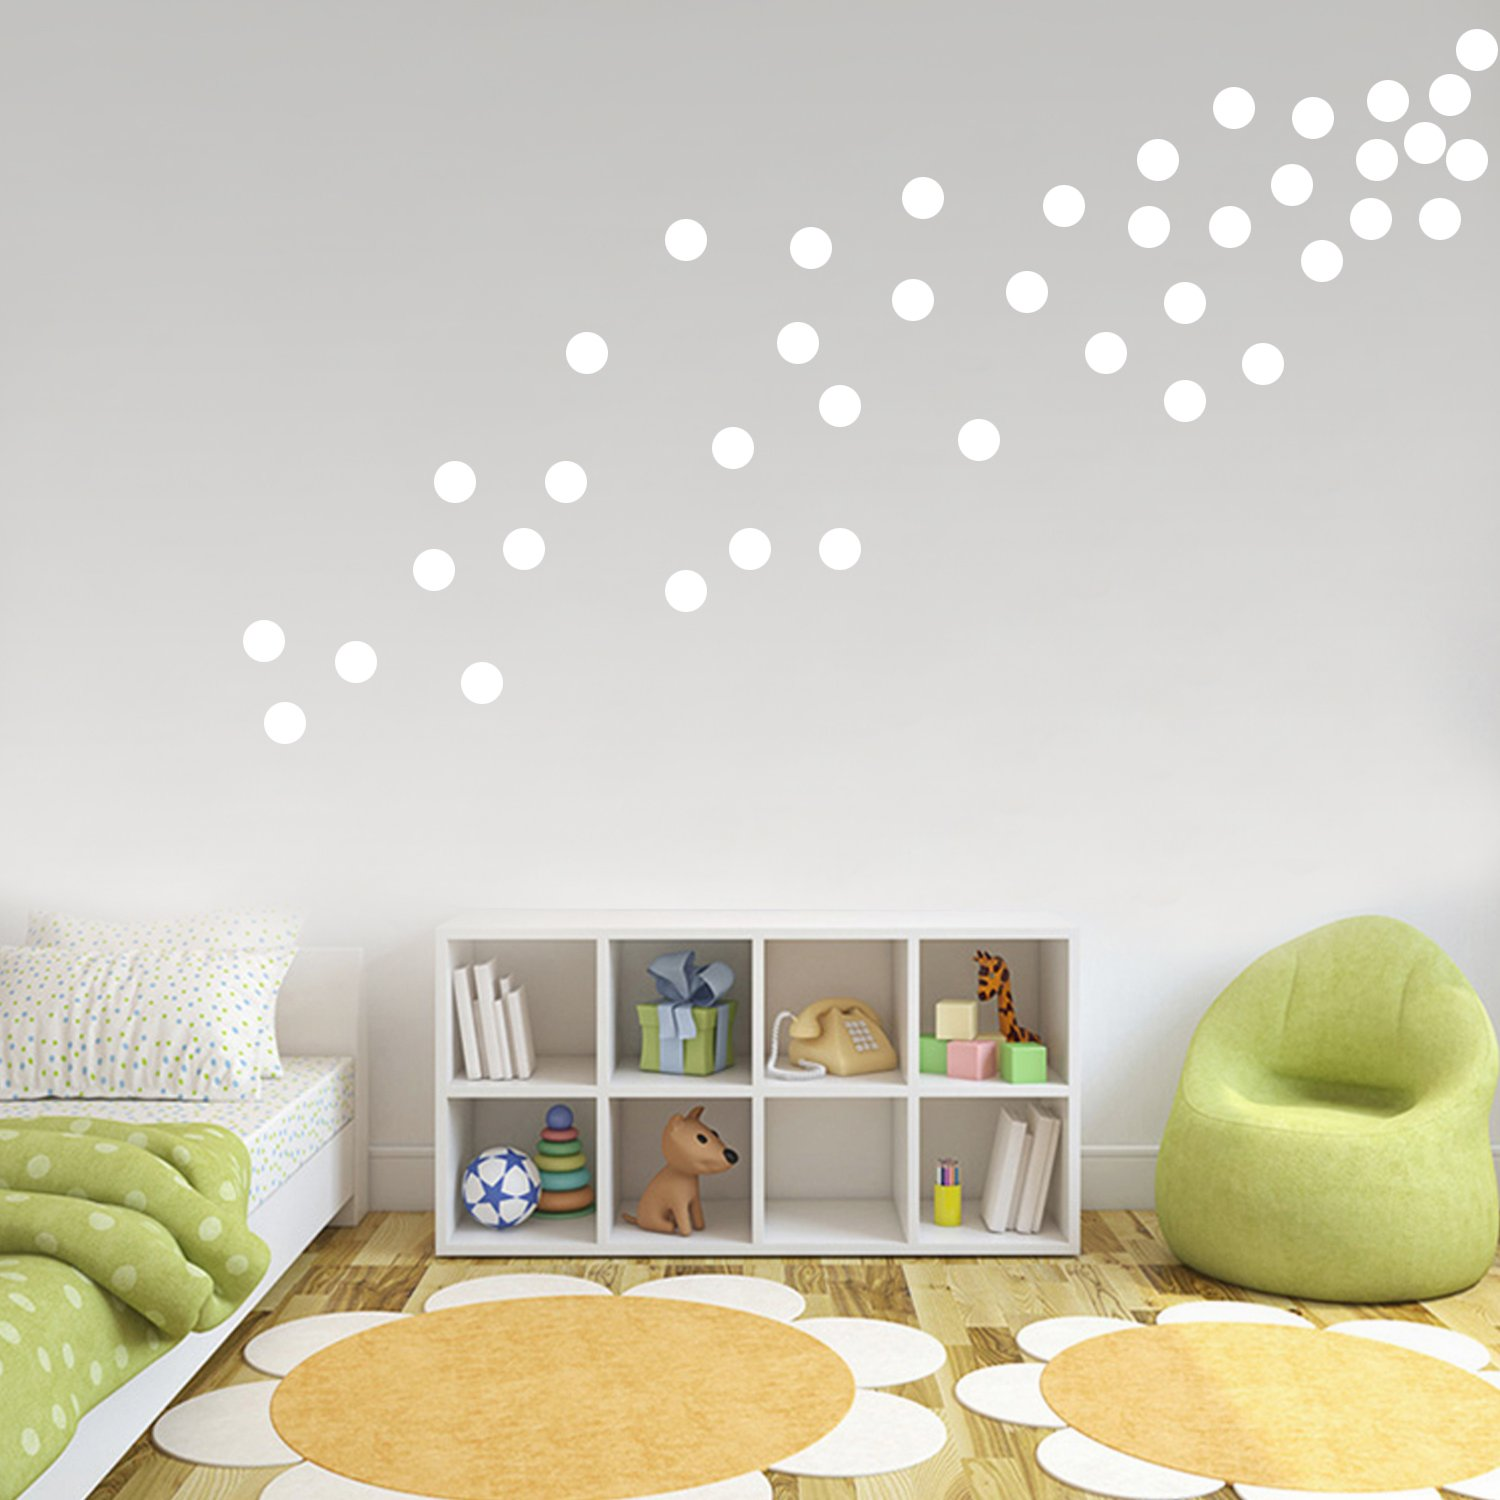 White Wall Decals Polka Dots Vinyl Stickers Safe on Painted Walls Round Art Removable Hanging Decor Decorations for Kids Nursery Rooms (200 Circles)